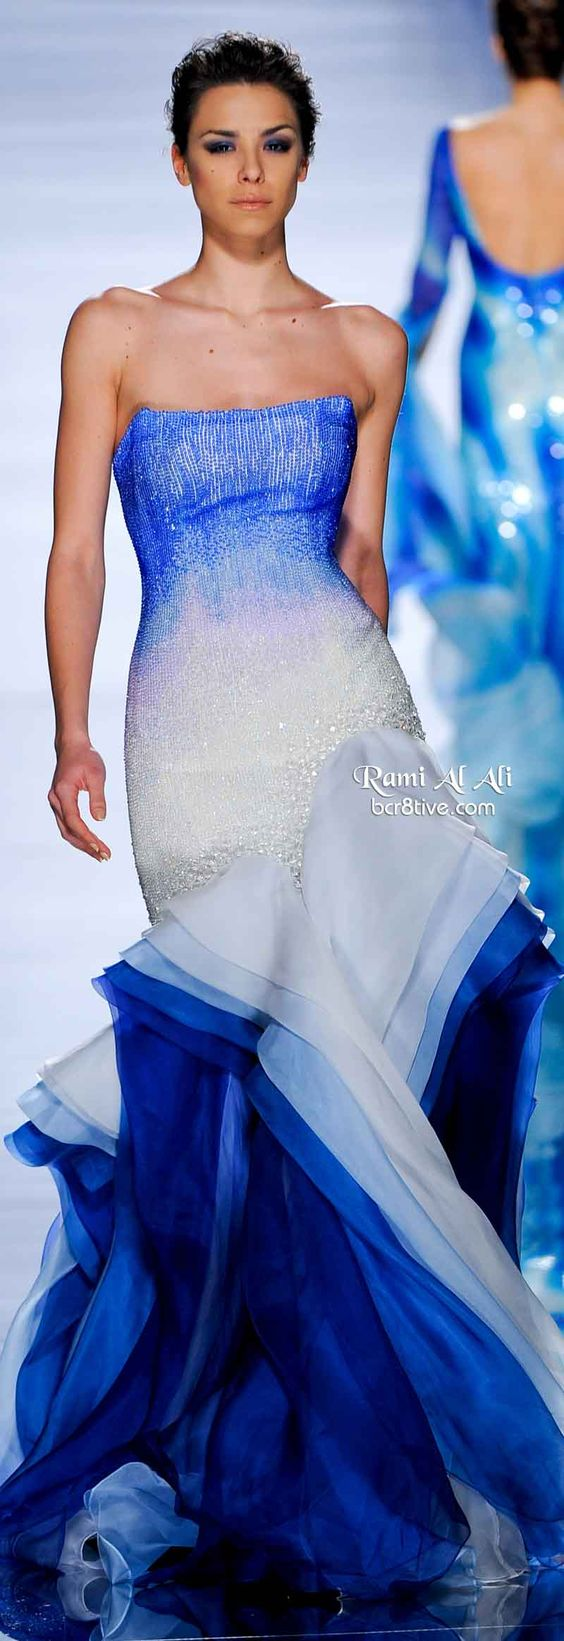 Rami Al Ali Couture SS 2011 | water color ombré | blue and white | strapless | beaded | layered chiffon evening gown<<< this dress is so cool: